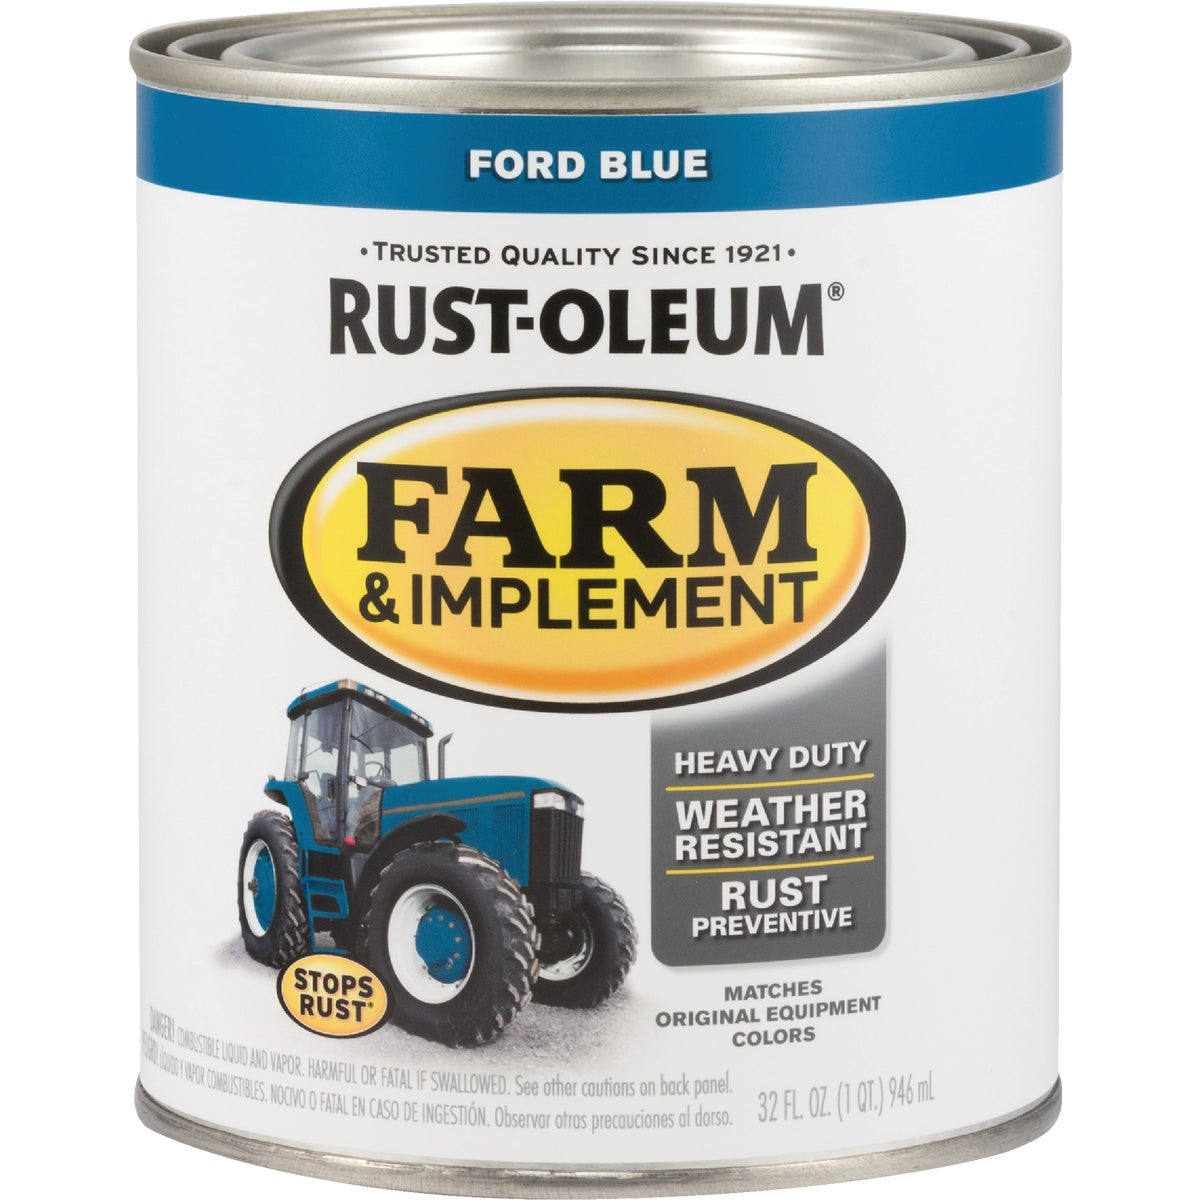 FORD BLUE IMPLMNT ENAMEL - 7424-502 by Rustoleum